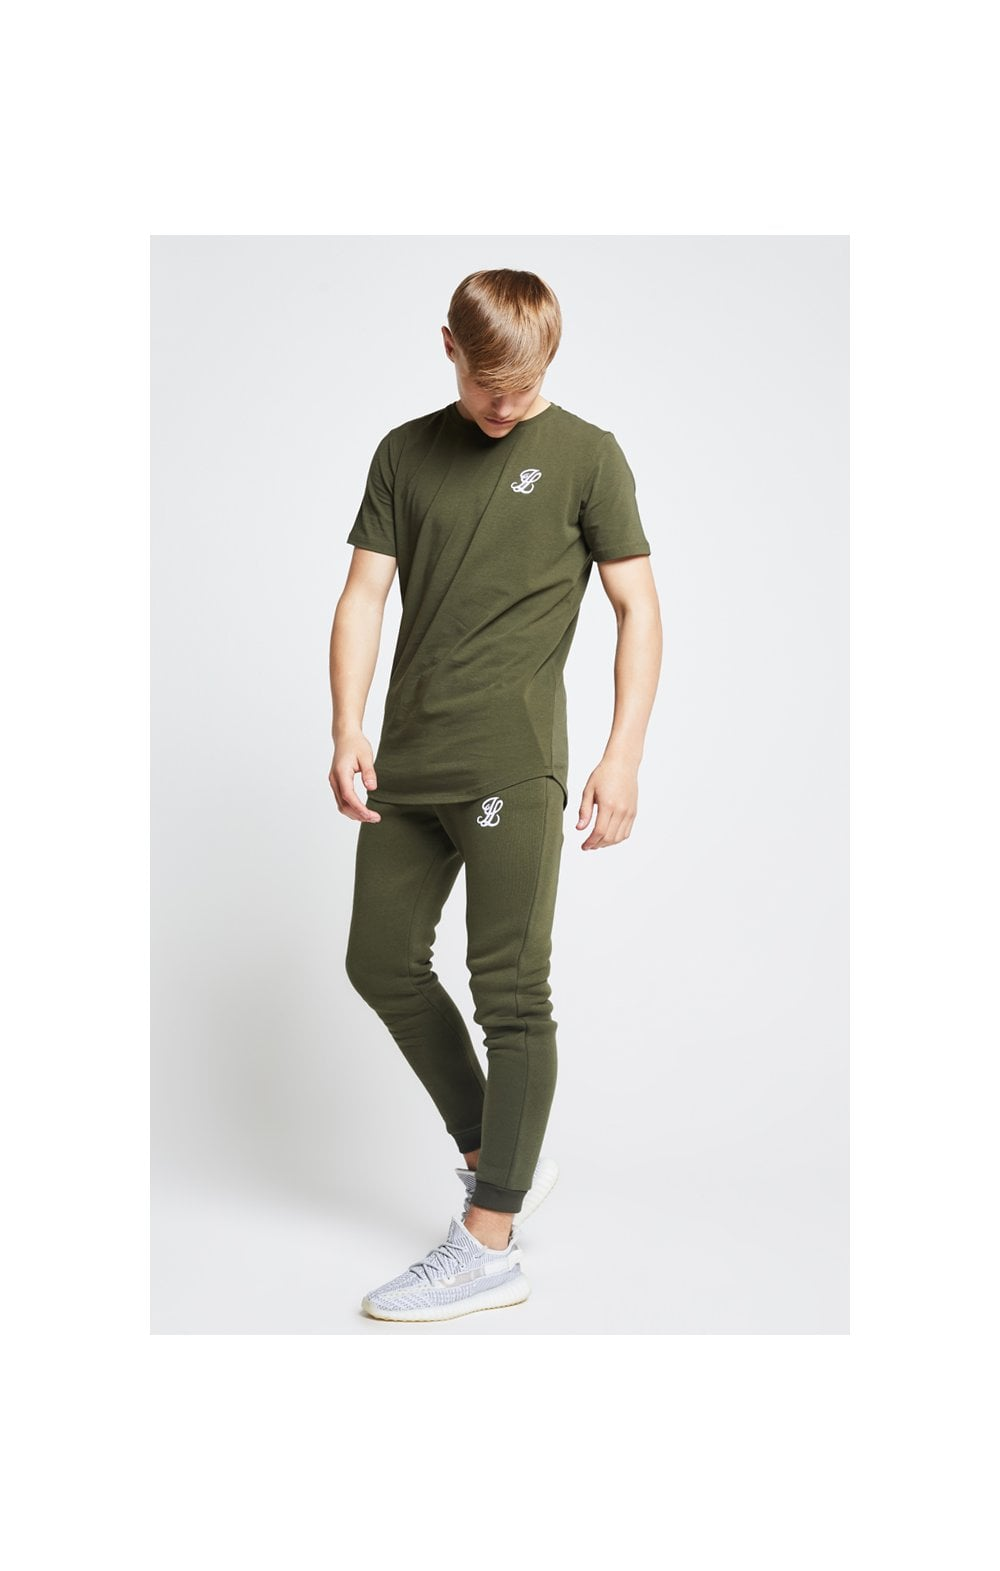 Illusive London Tee – Khaki (3)